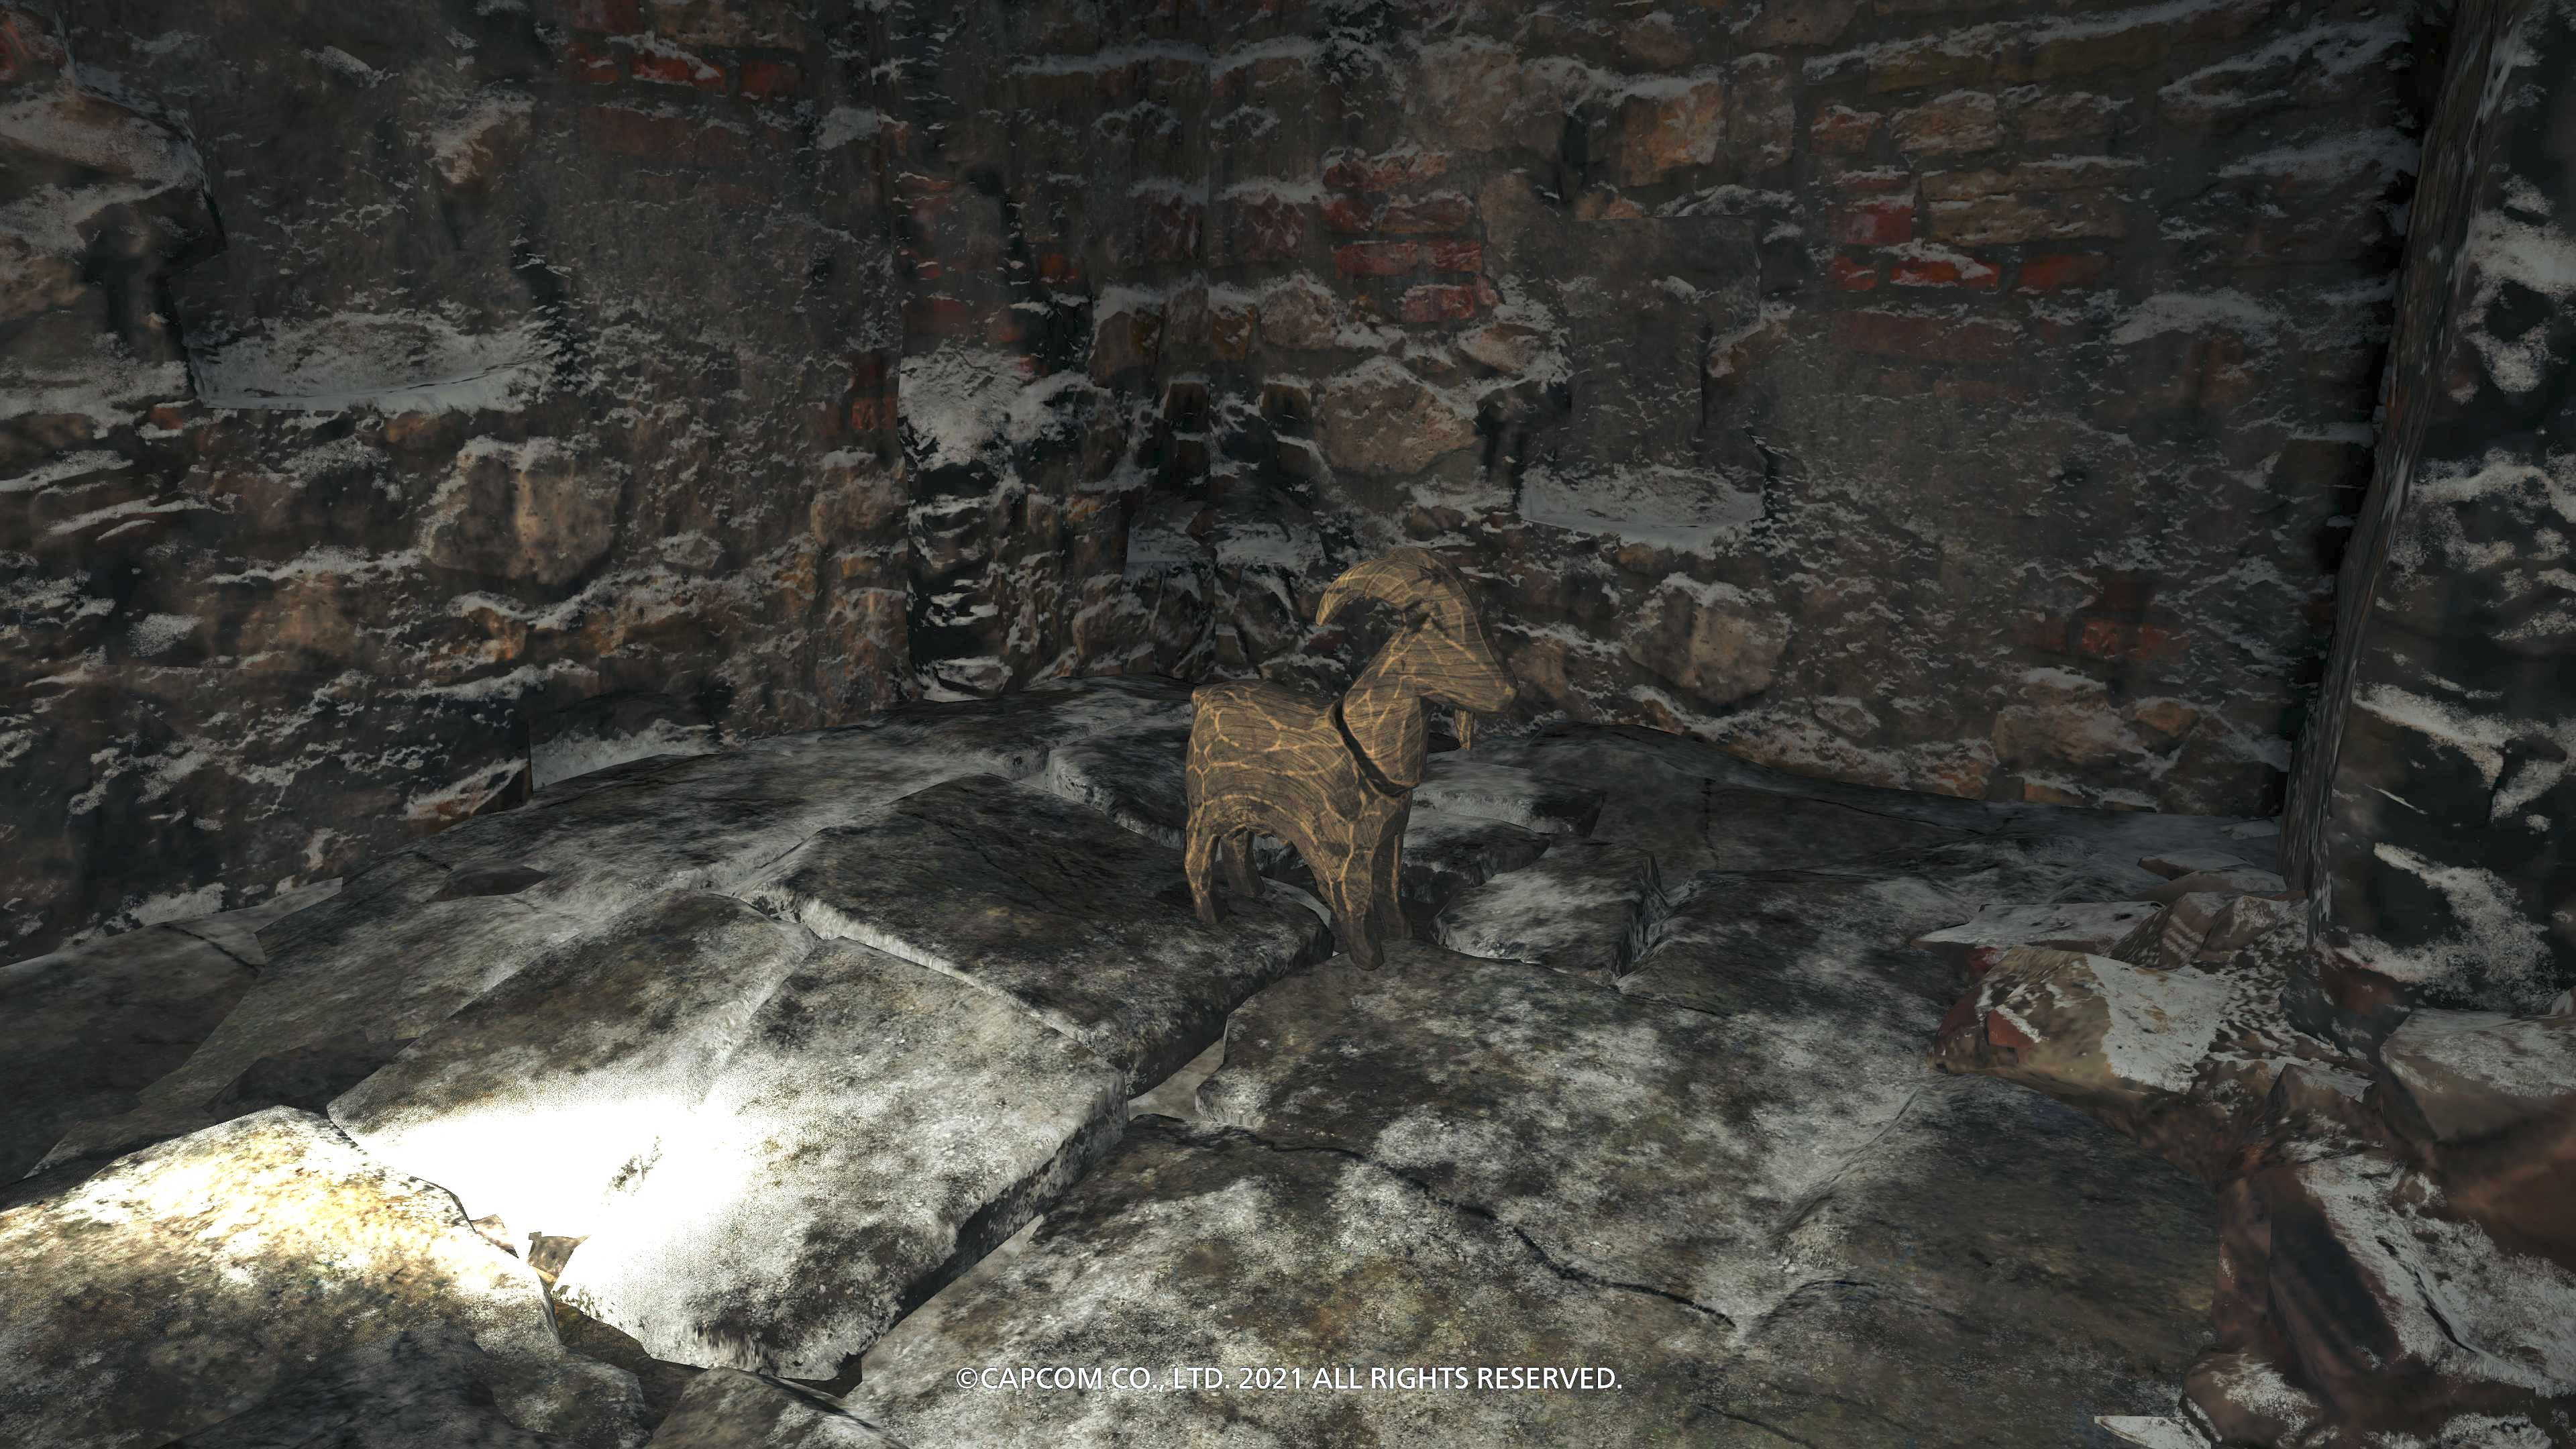 A Goat of Warding collectible item in Resident Evil Village